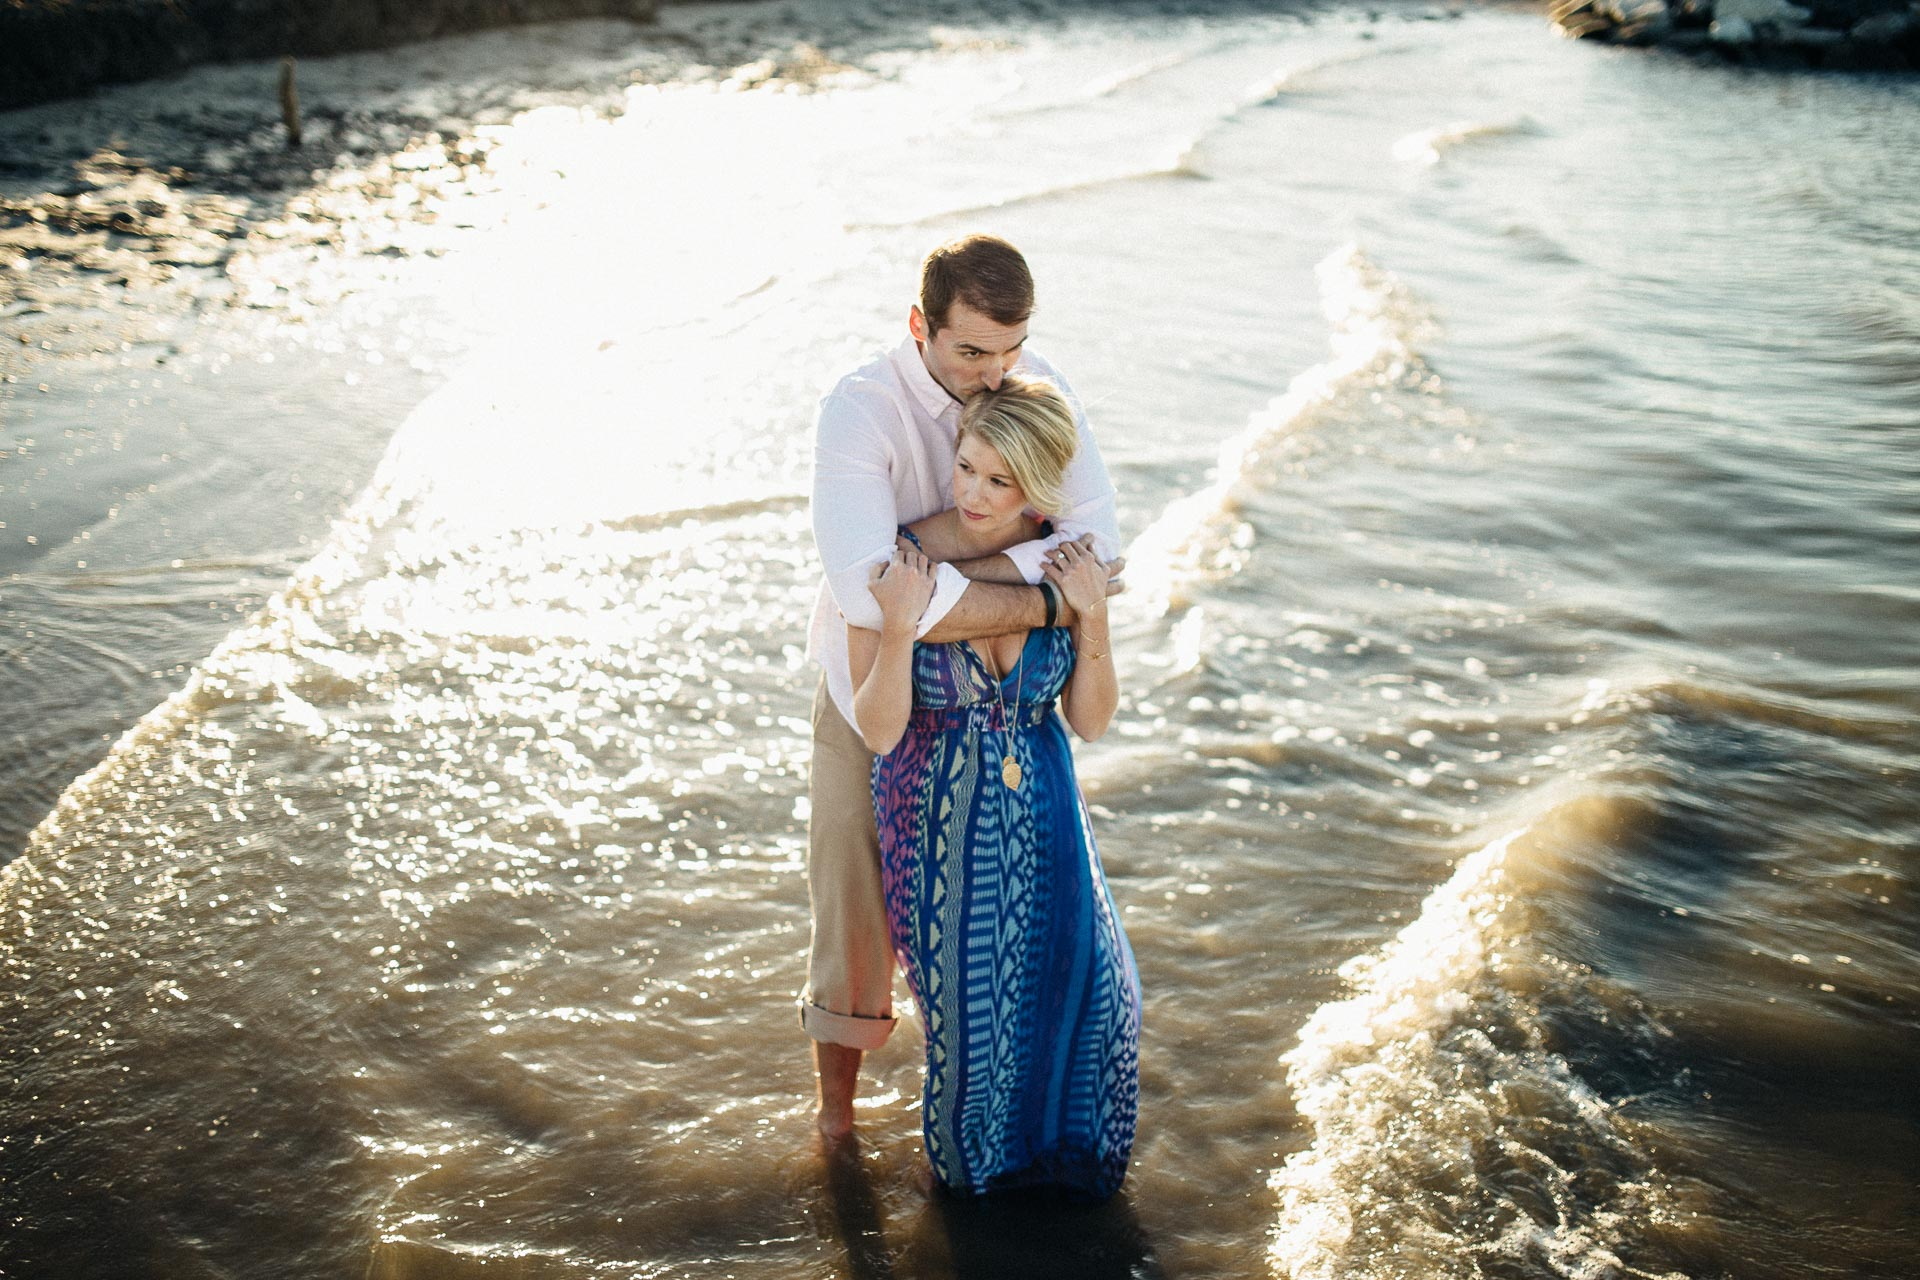 Kristin_Sasa_Engagement_Herrington_Maryland_JeanLaurentGaudy_051